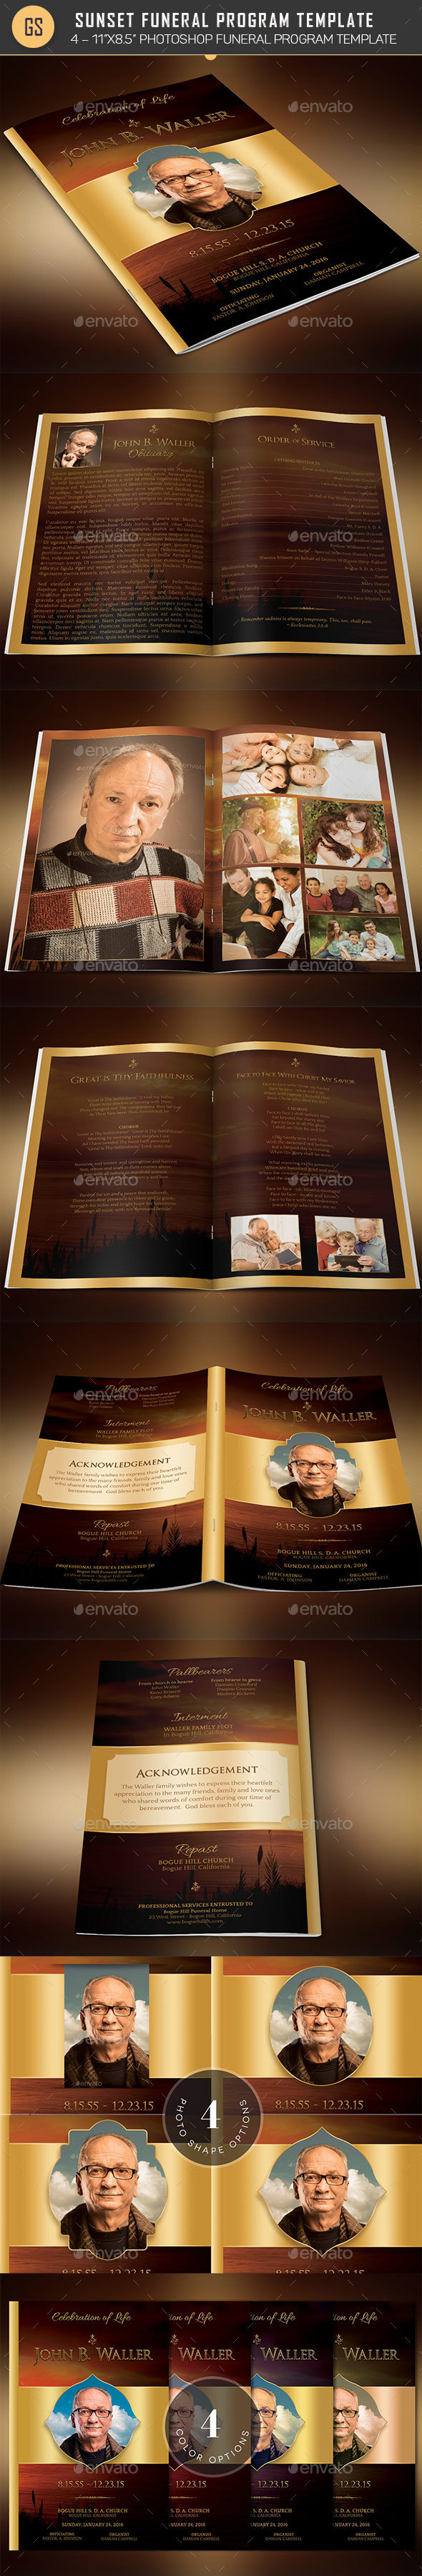 Sunset Funeral Program Template by Godserv2 | GraphicRiver